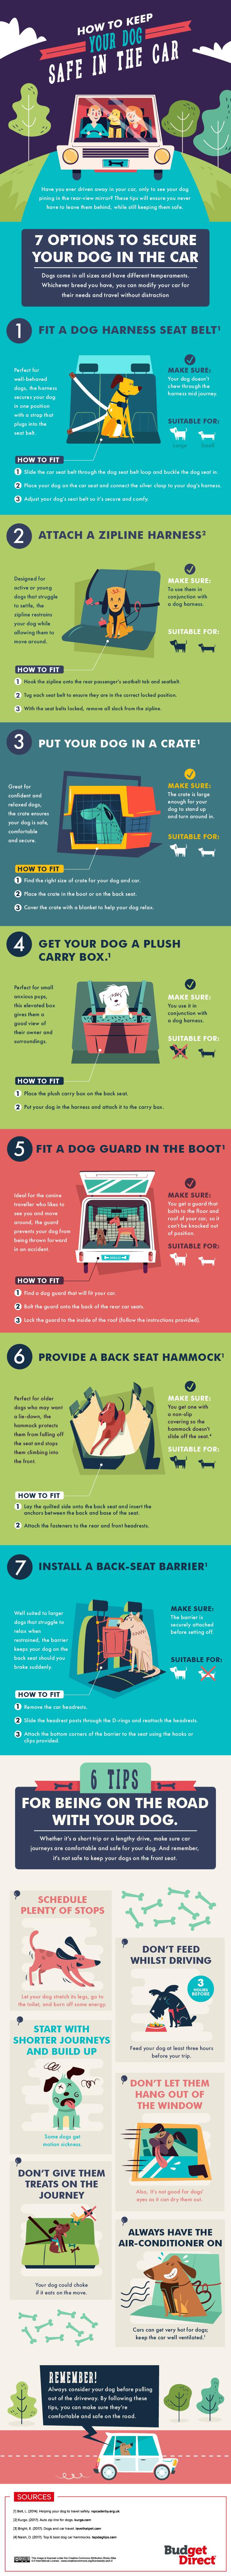 DESIGN - How-to-keep-dog-safe-in-the-car (1)